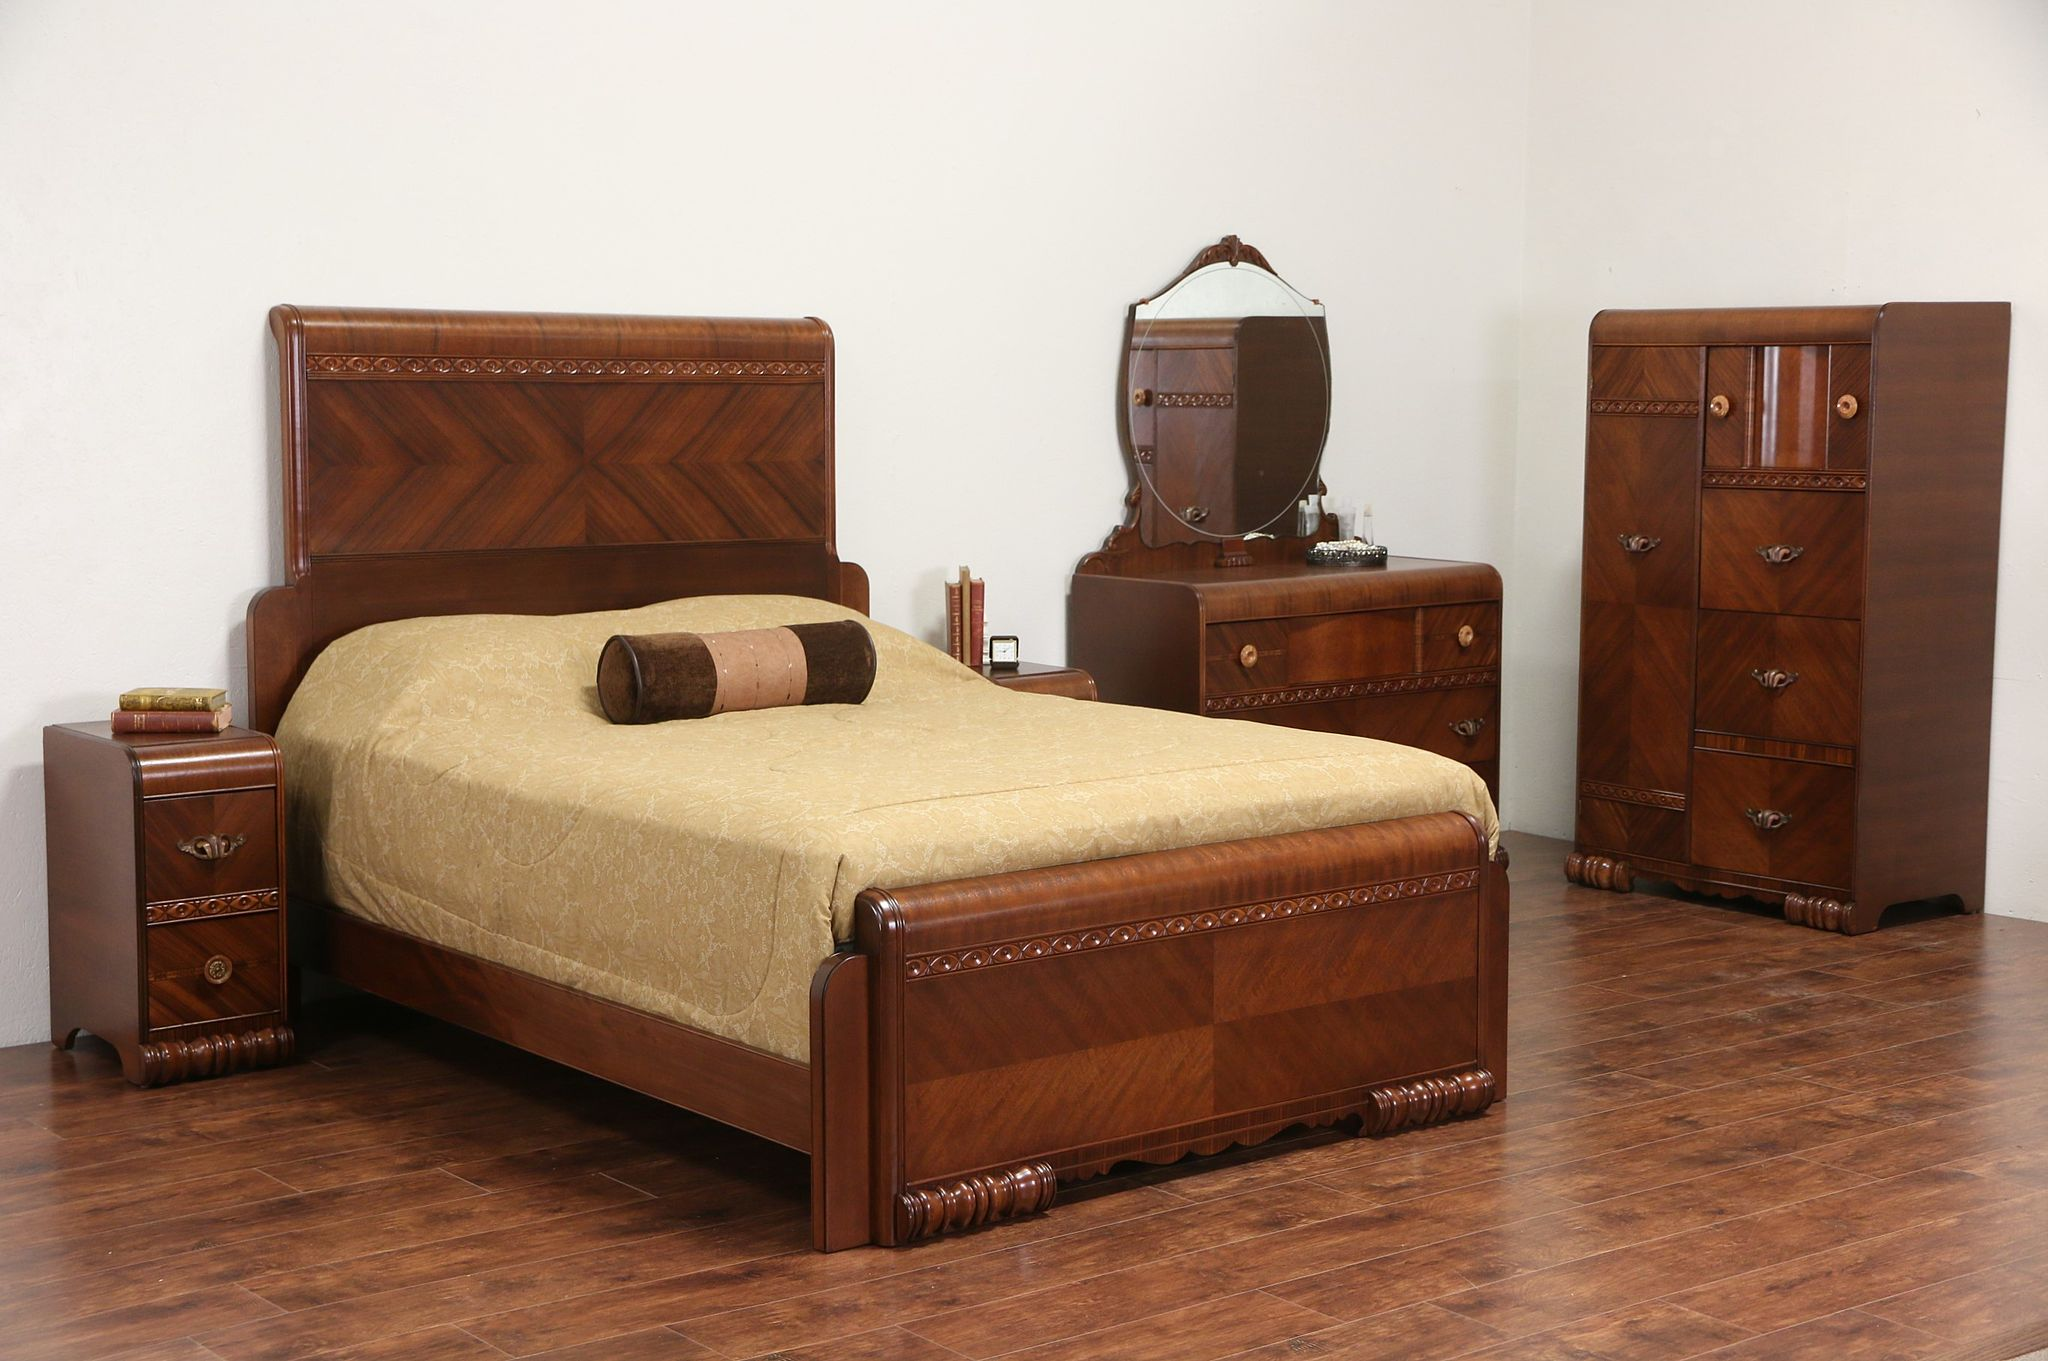 SOLD - Art Deco 1935 Vintage Queen Size Waterfall 5 Pc. Bedroom Set ...